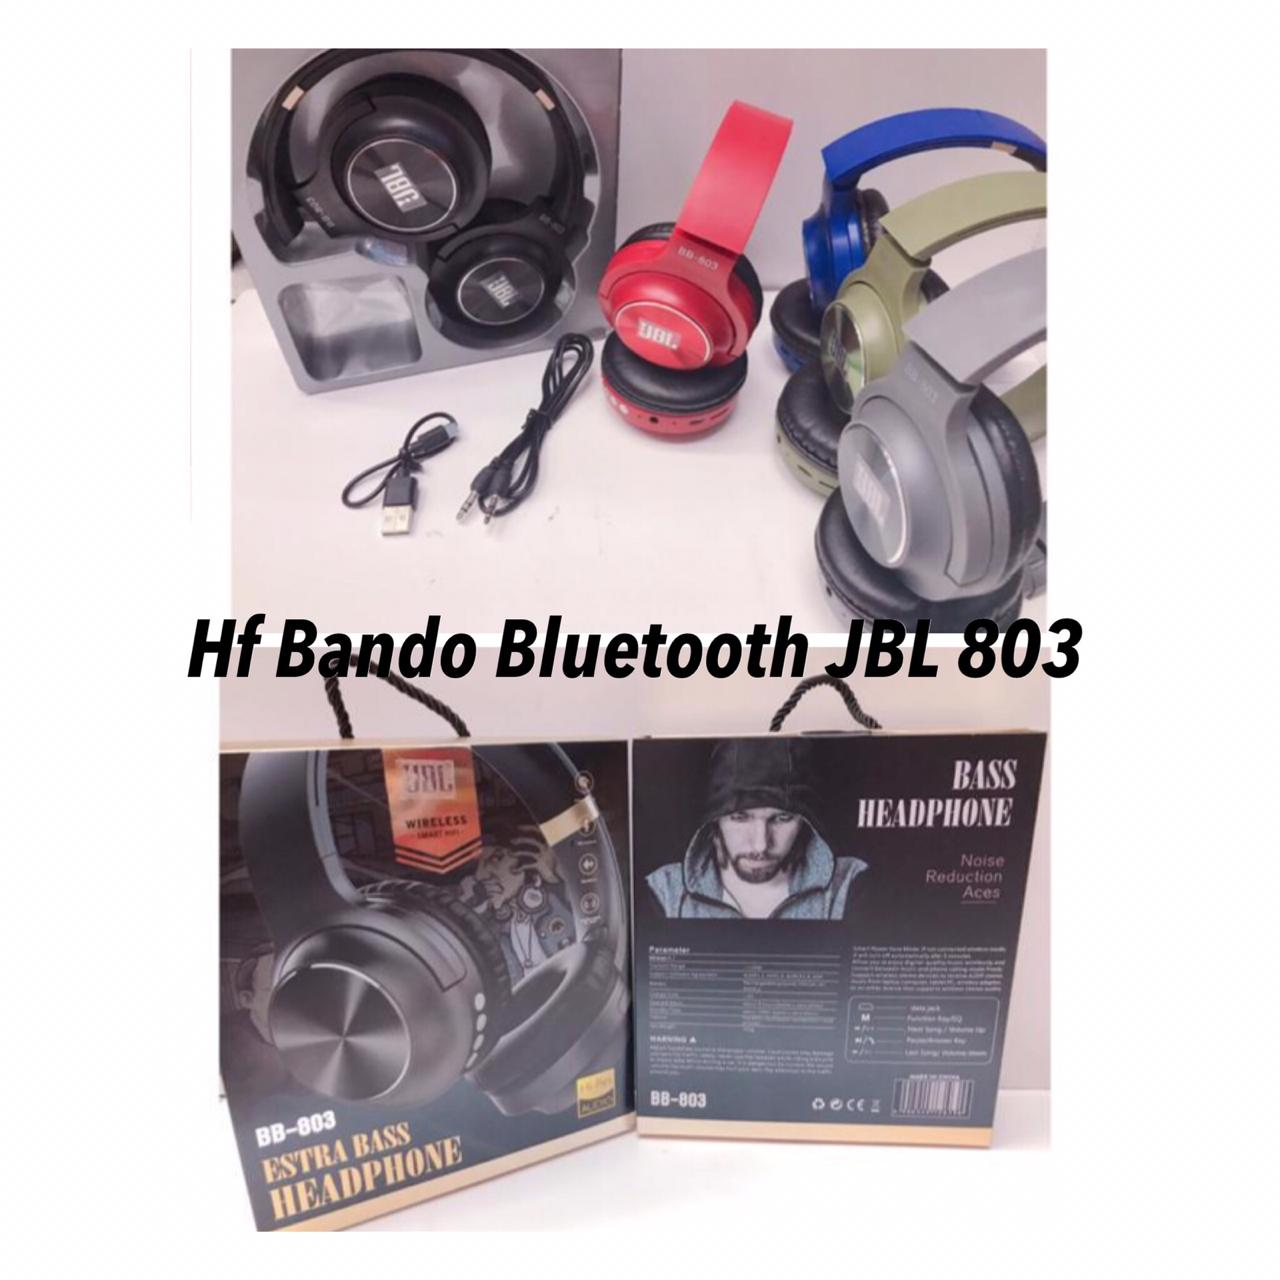 Headset Bando Bluetooth JBL 803